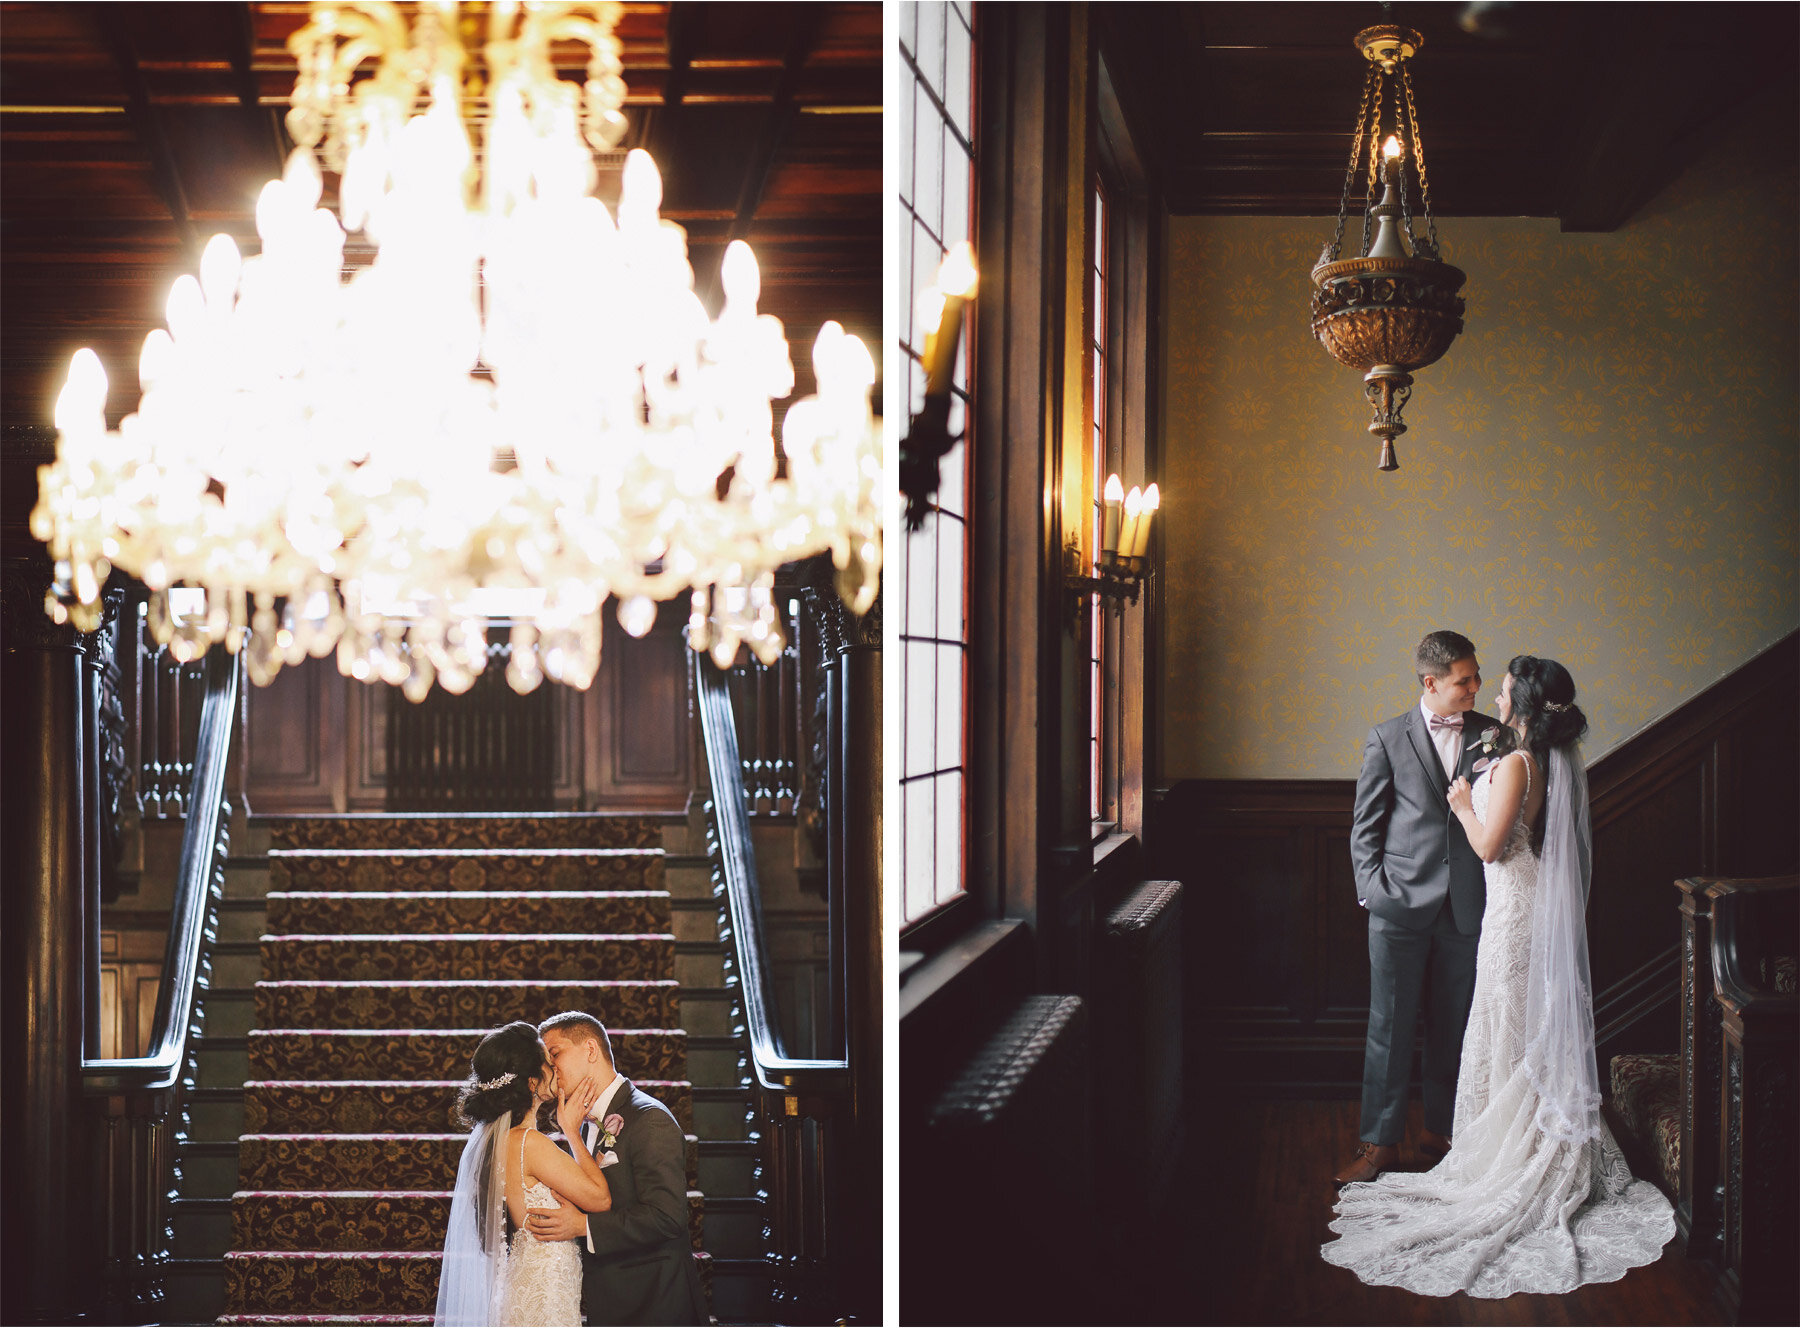 04-Wedding-by-Vick-Photography-Minneapolis-Minnesota-Semple-Mansion-Historic-Venue-Bride-Groom-First-Look-Staircase-Kaitlyn-and-Nate.jpg